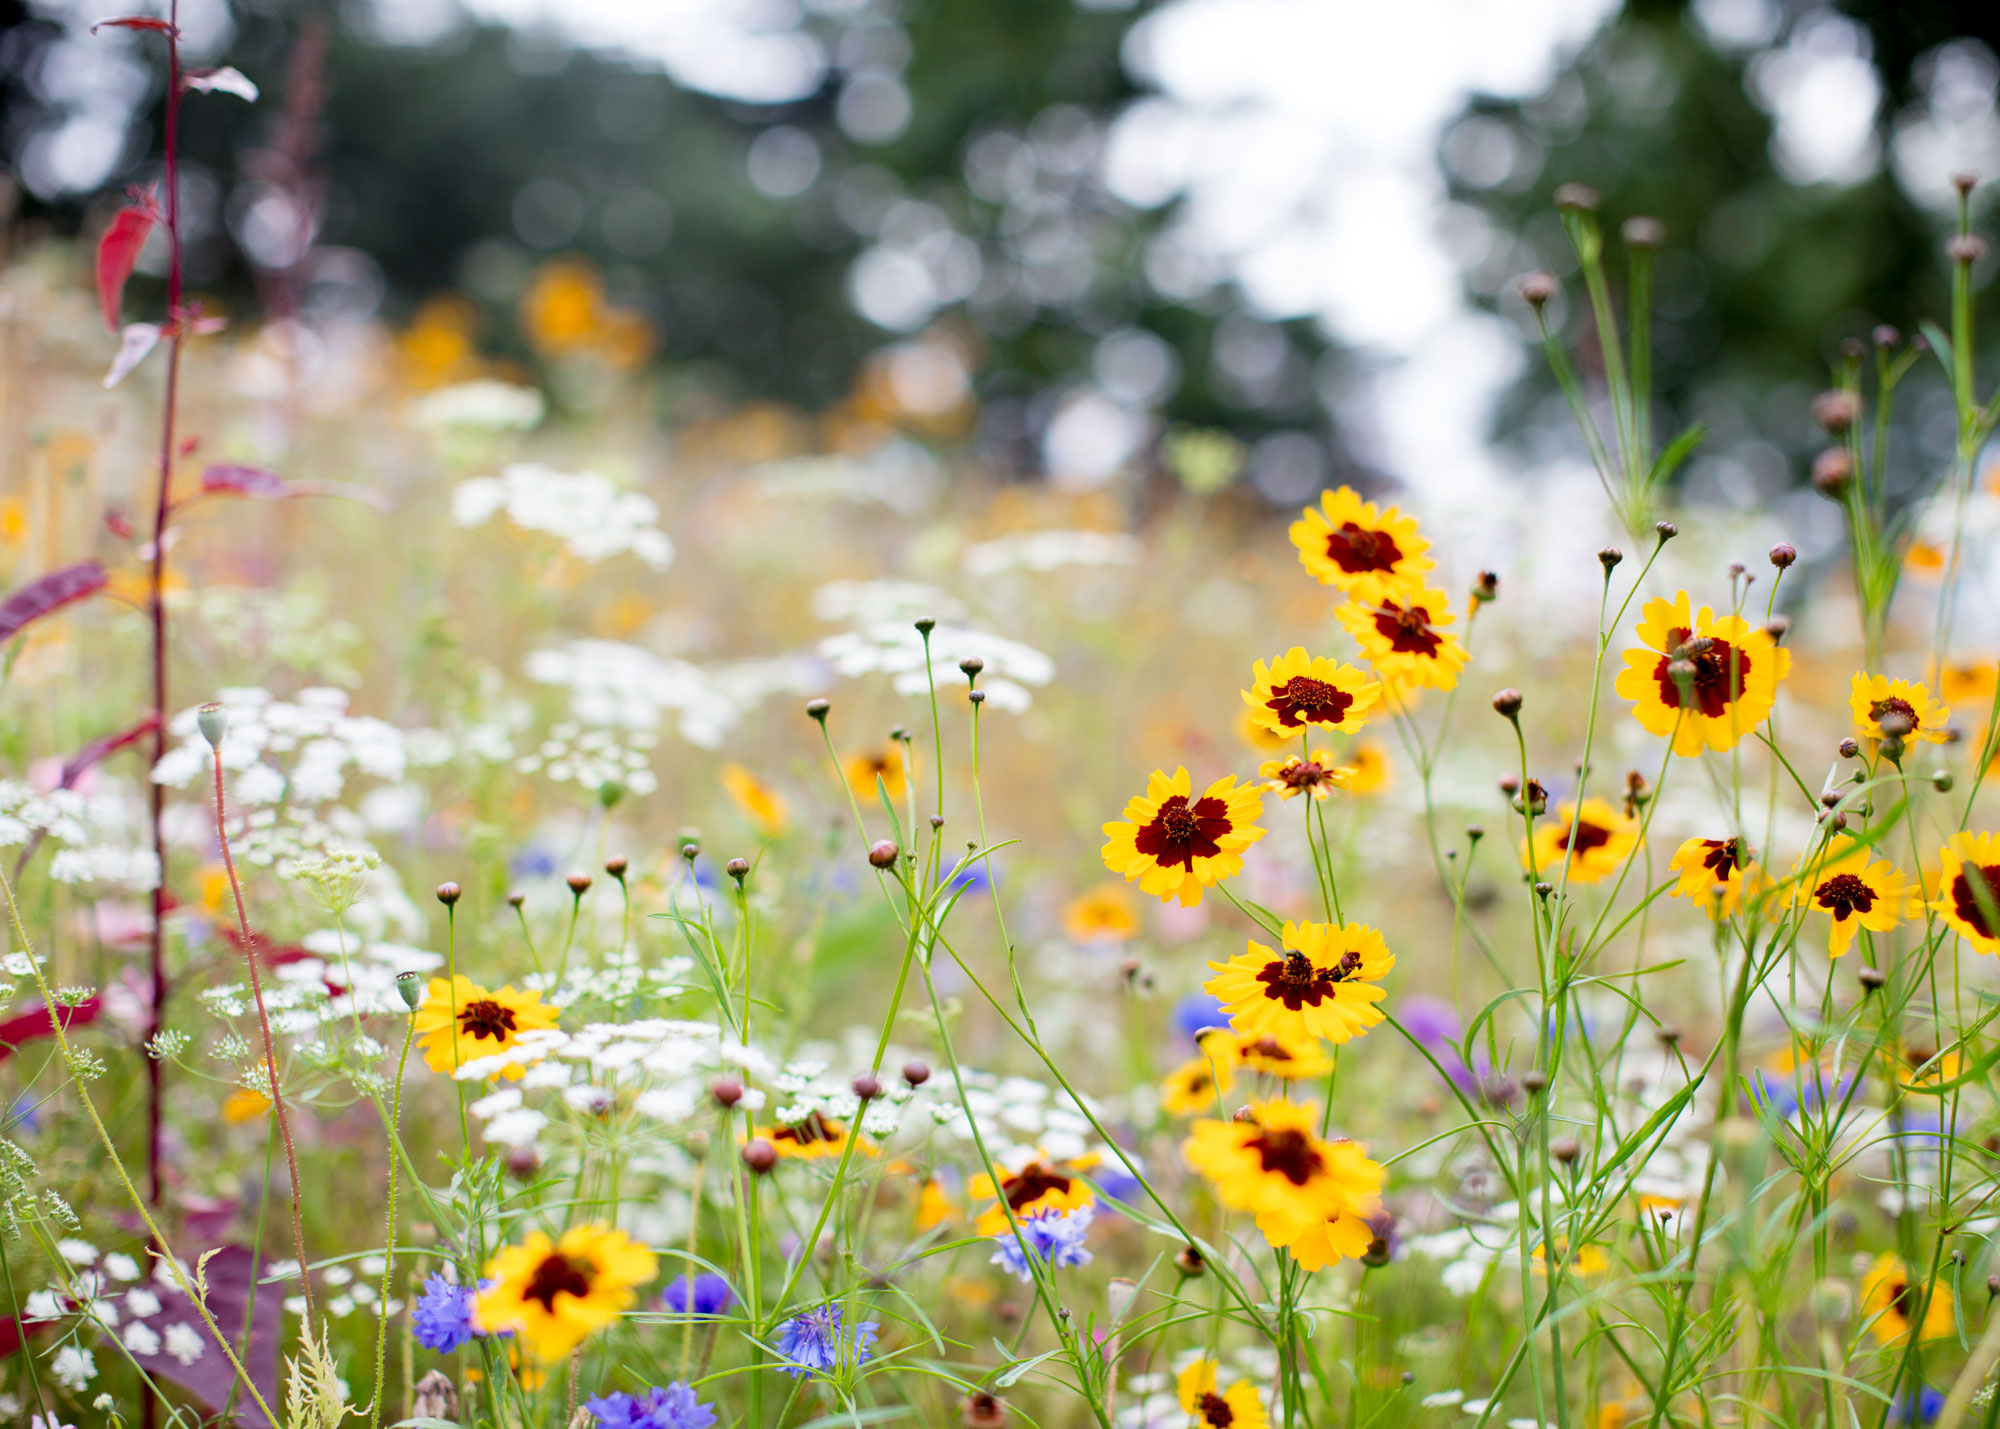 A close up of a meadow with yellow white and red flowers growing, looking wild and unmanaged.